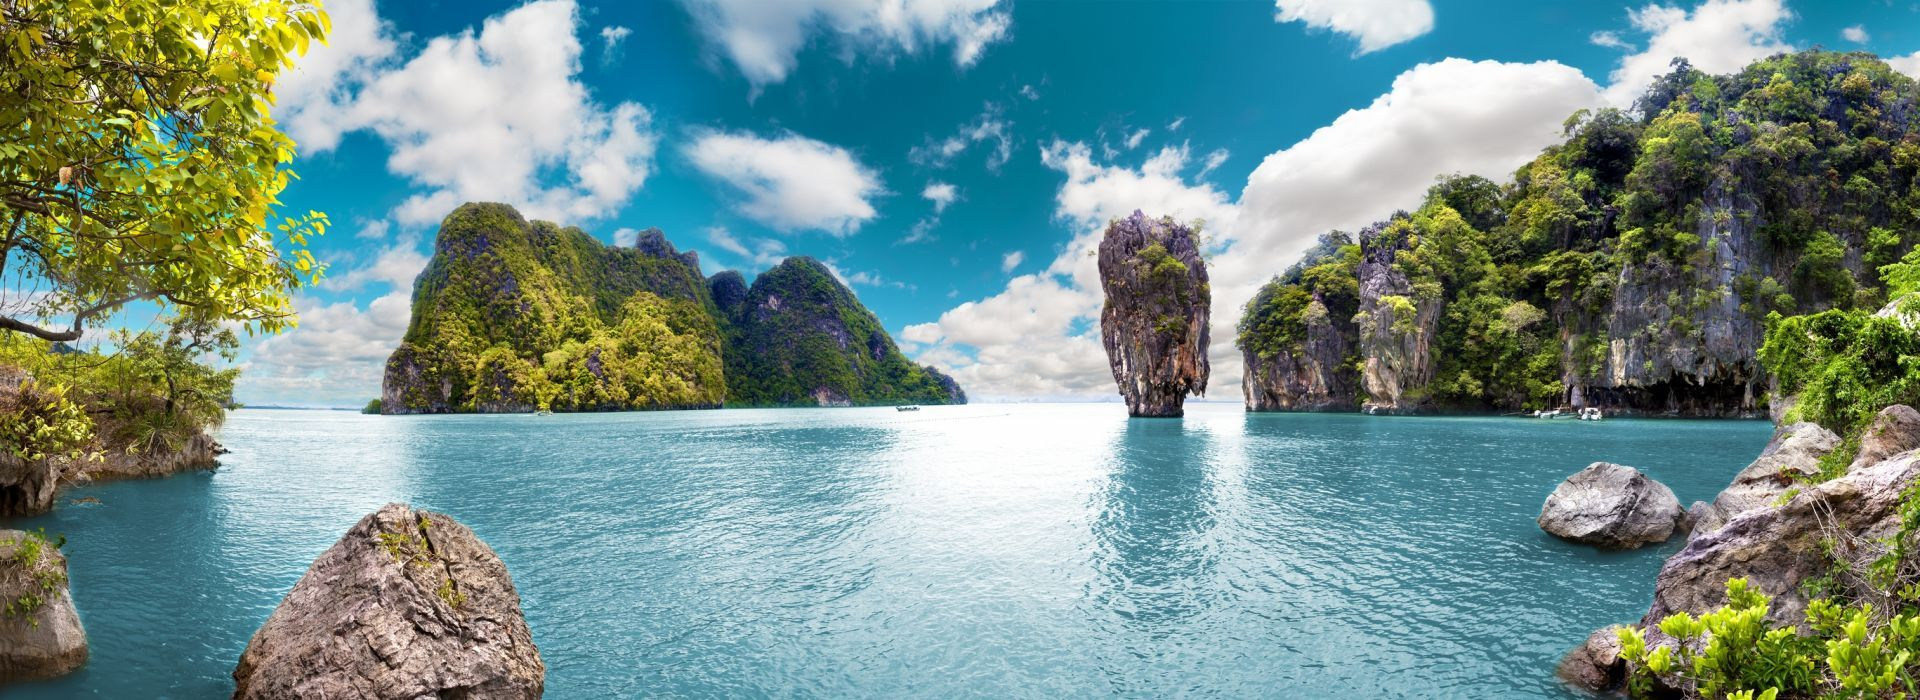 Cultural, religious and historic sites Tours in Phuket